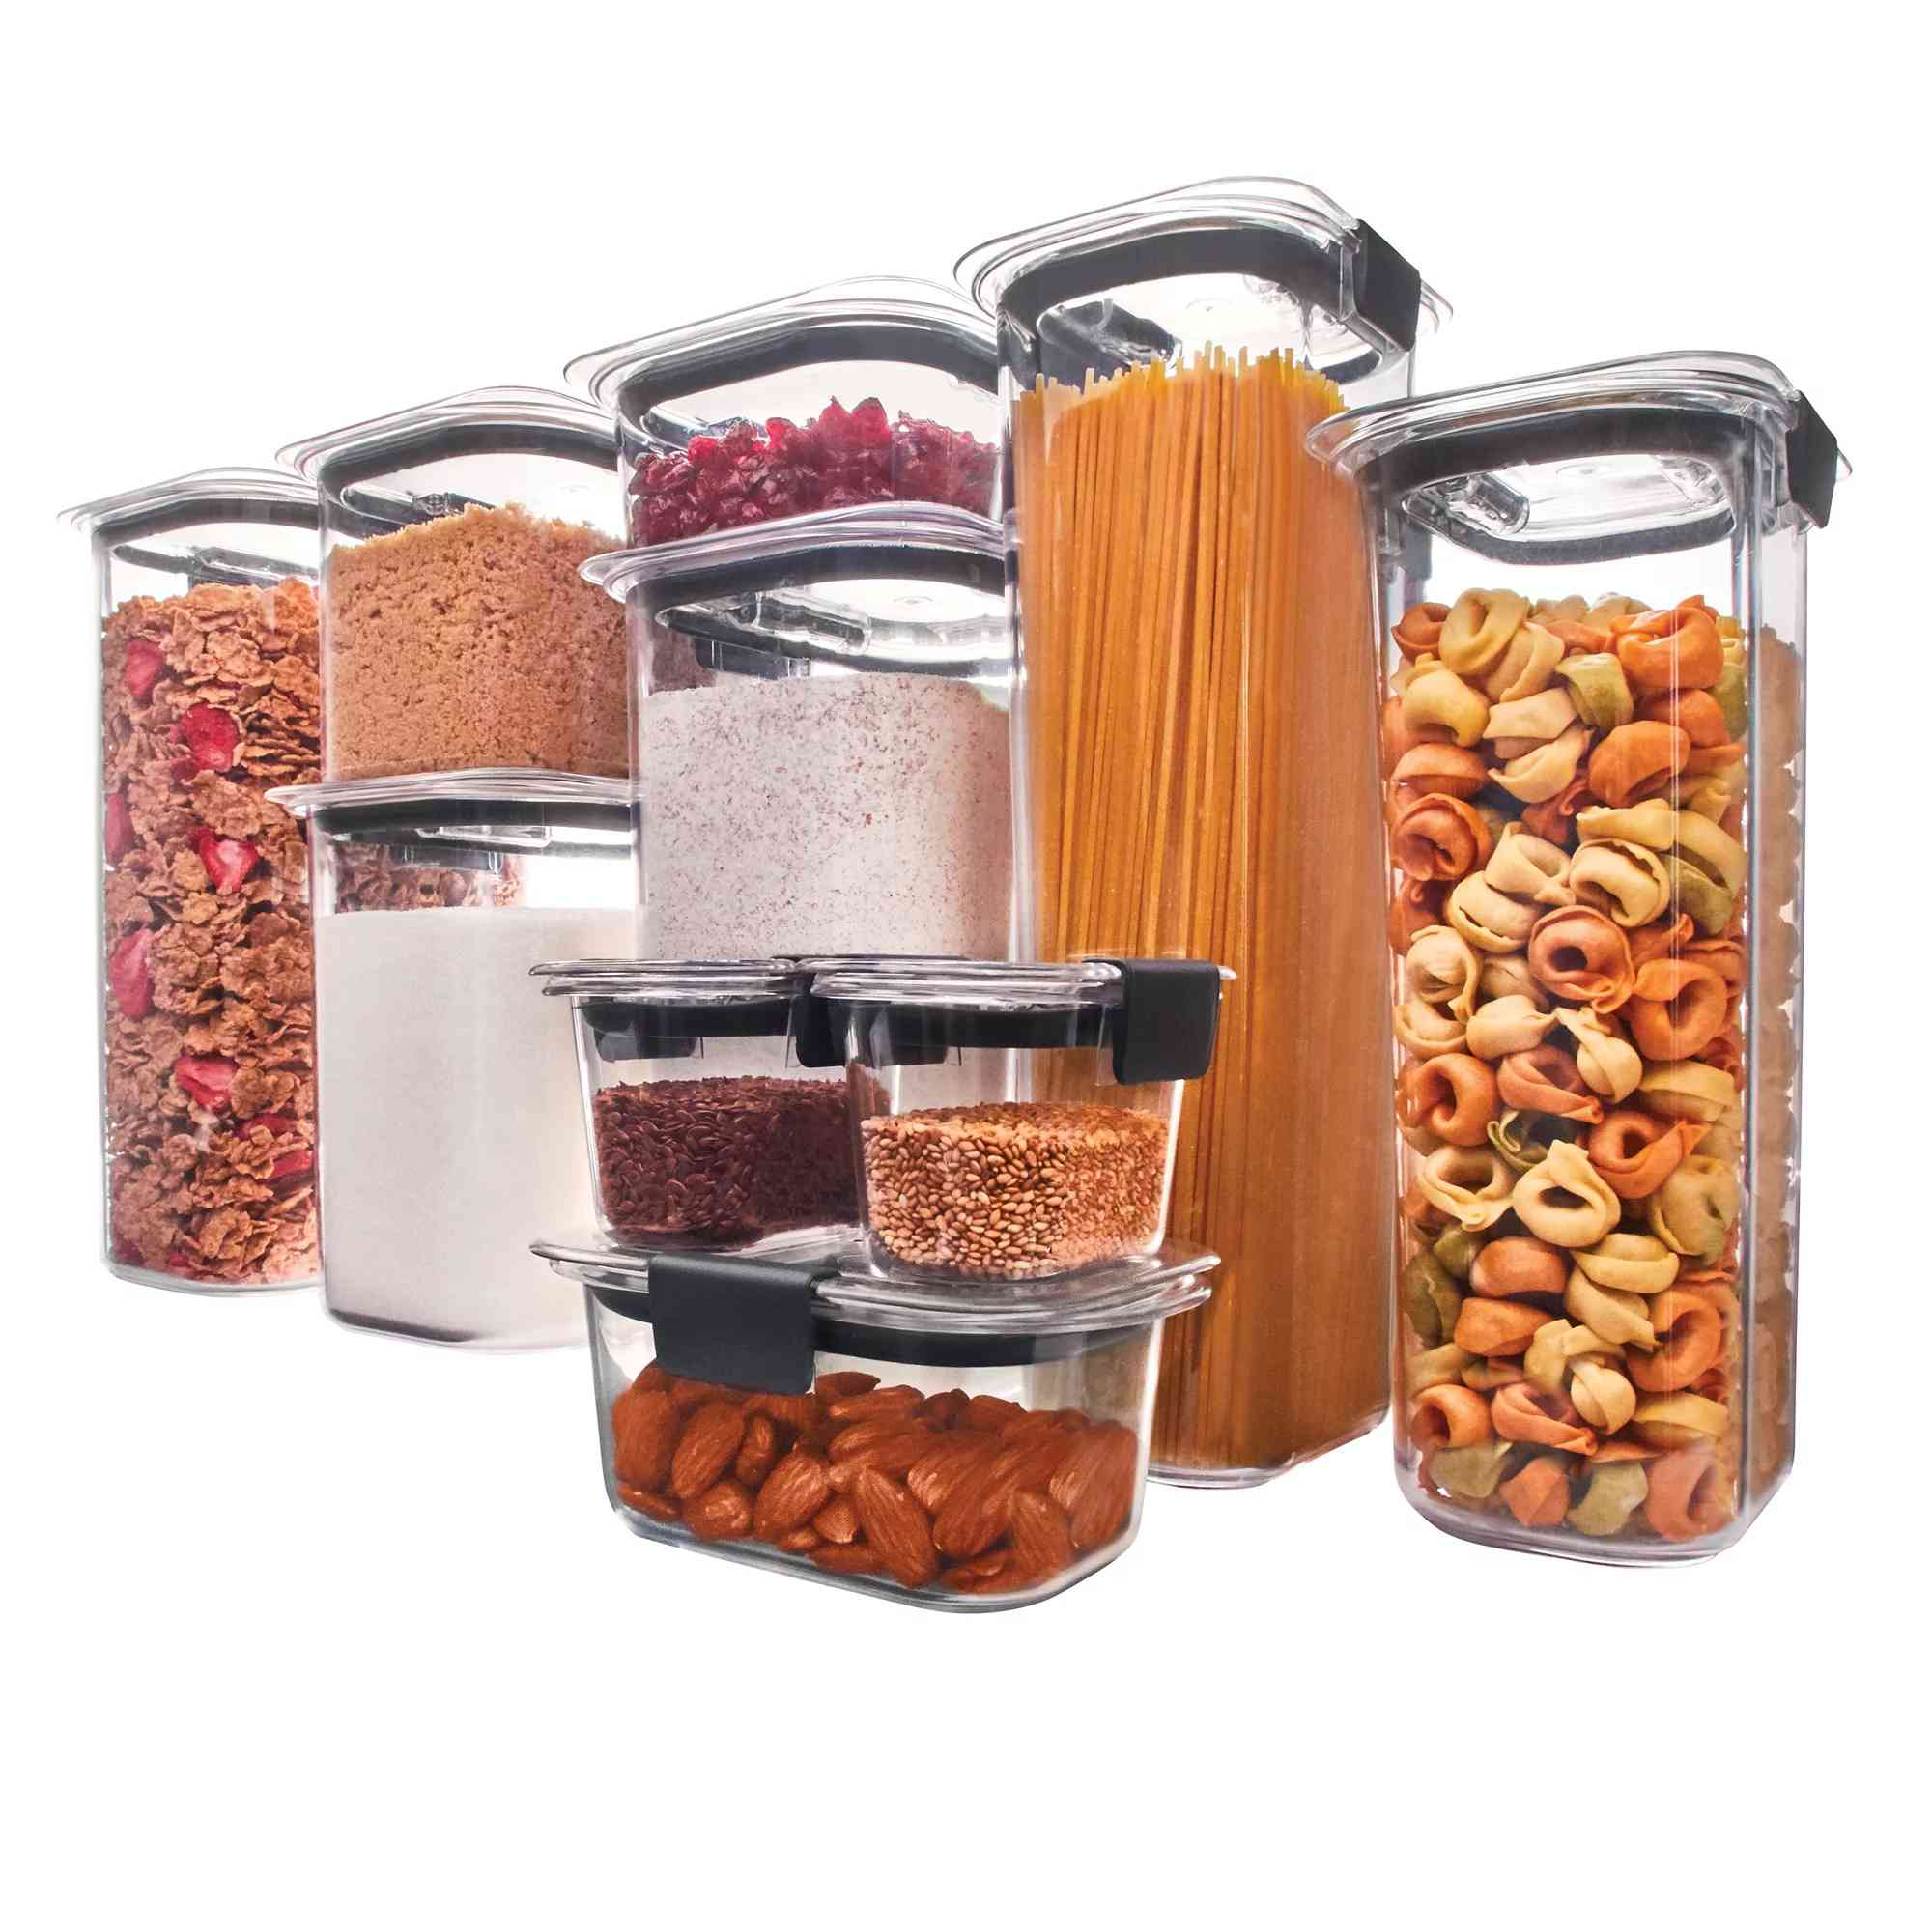 Rubbermaid Brilliance Pantry Organization & Food Storage Containers with Airtight Lids